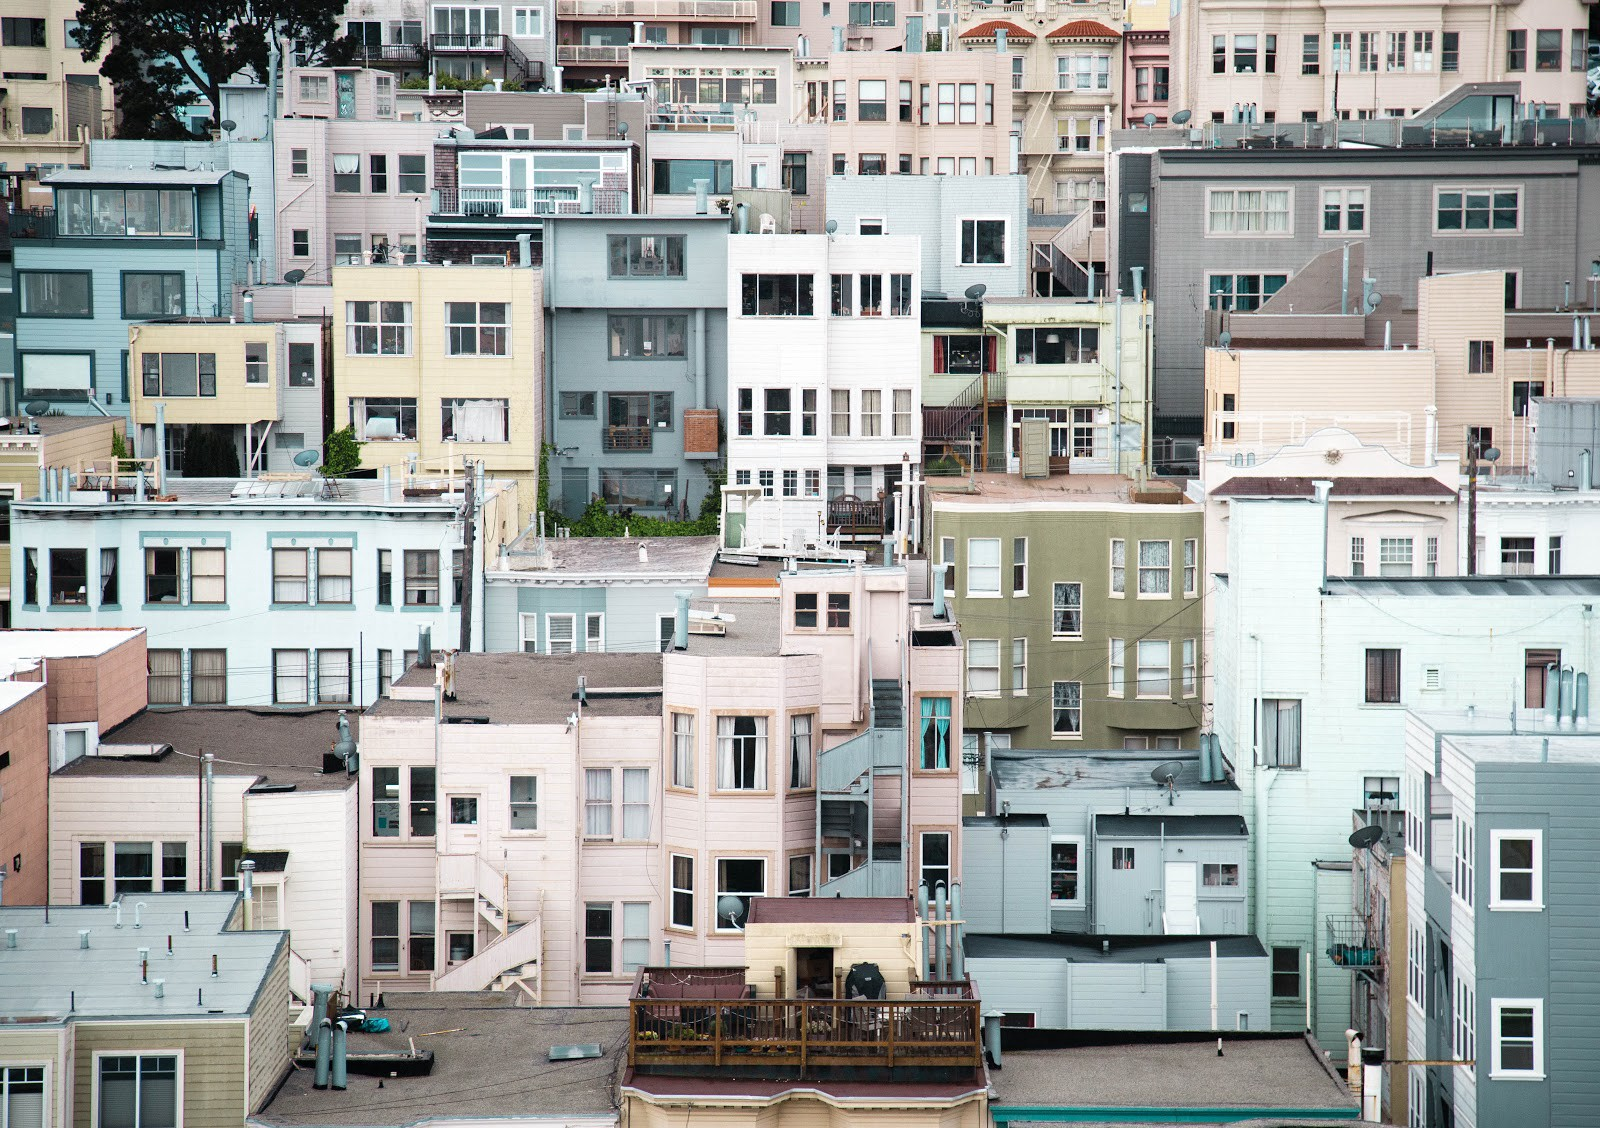 /grounded-in-san-francisco-a-story-about-knee-surgeries-and-more-f3d96af186b6 feature image